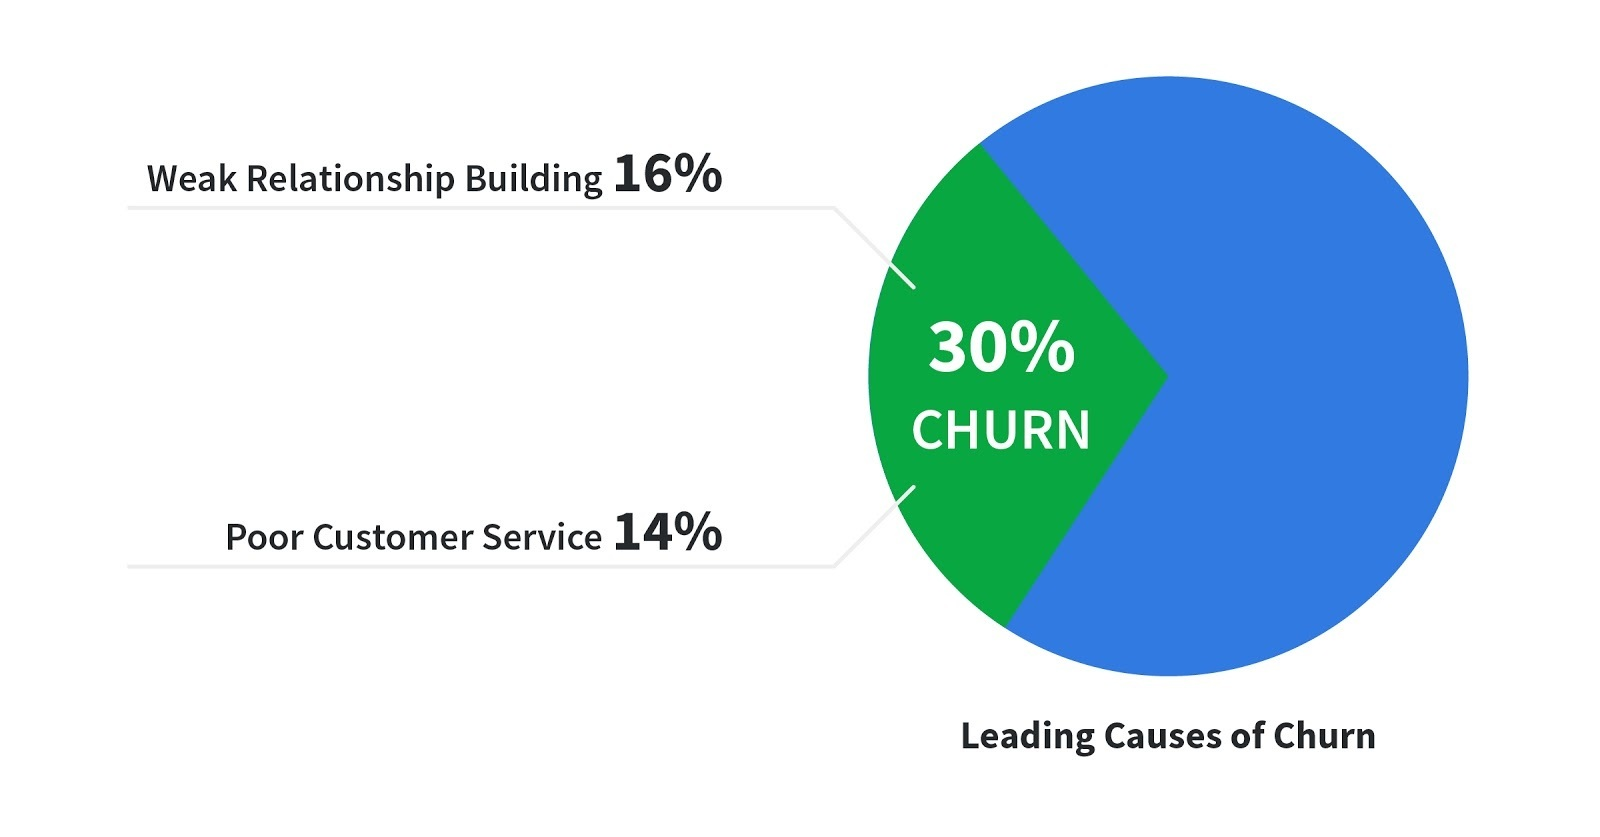 Leading Causes of Churn